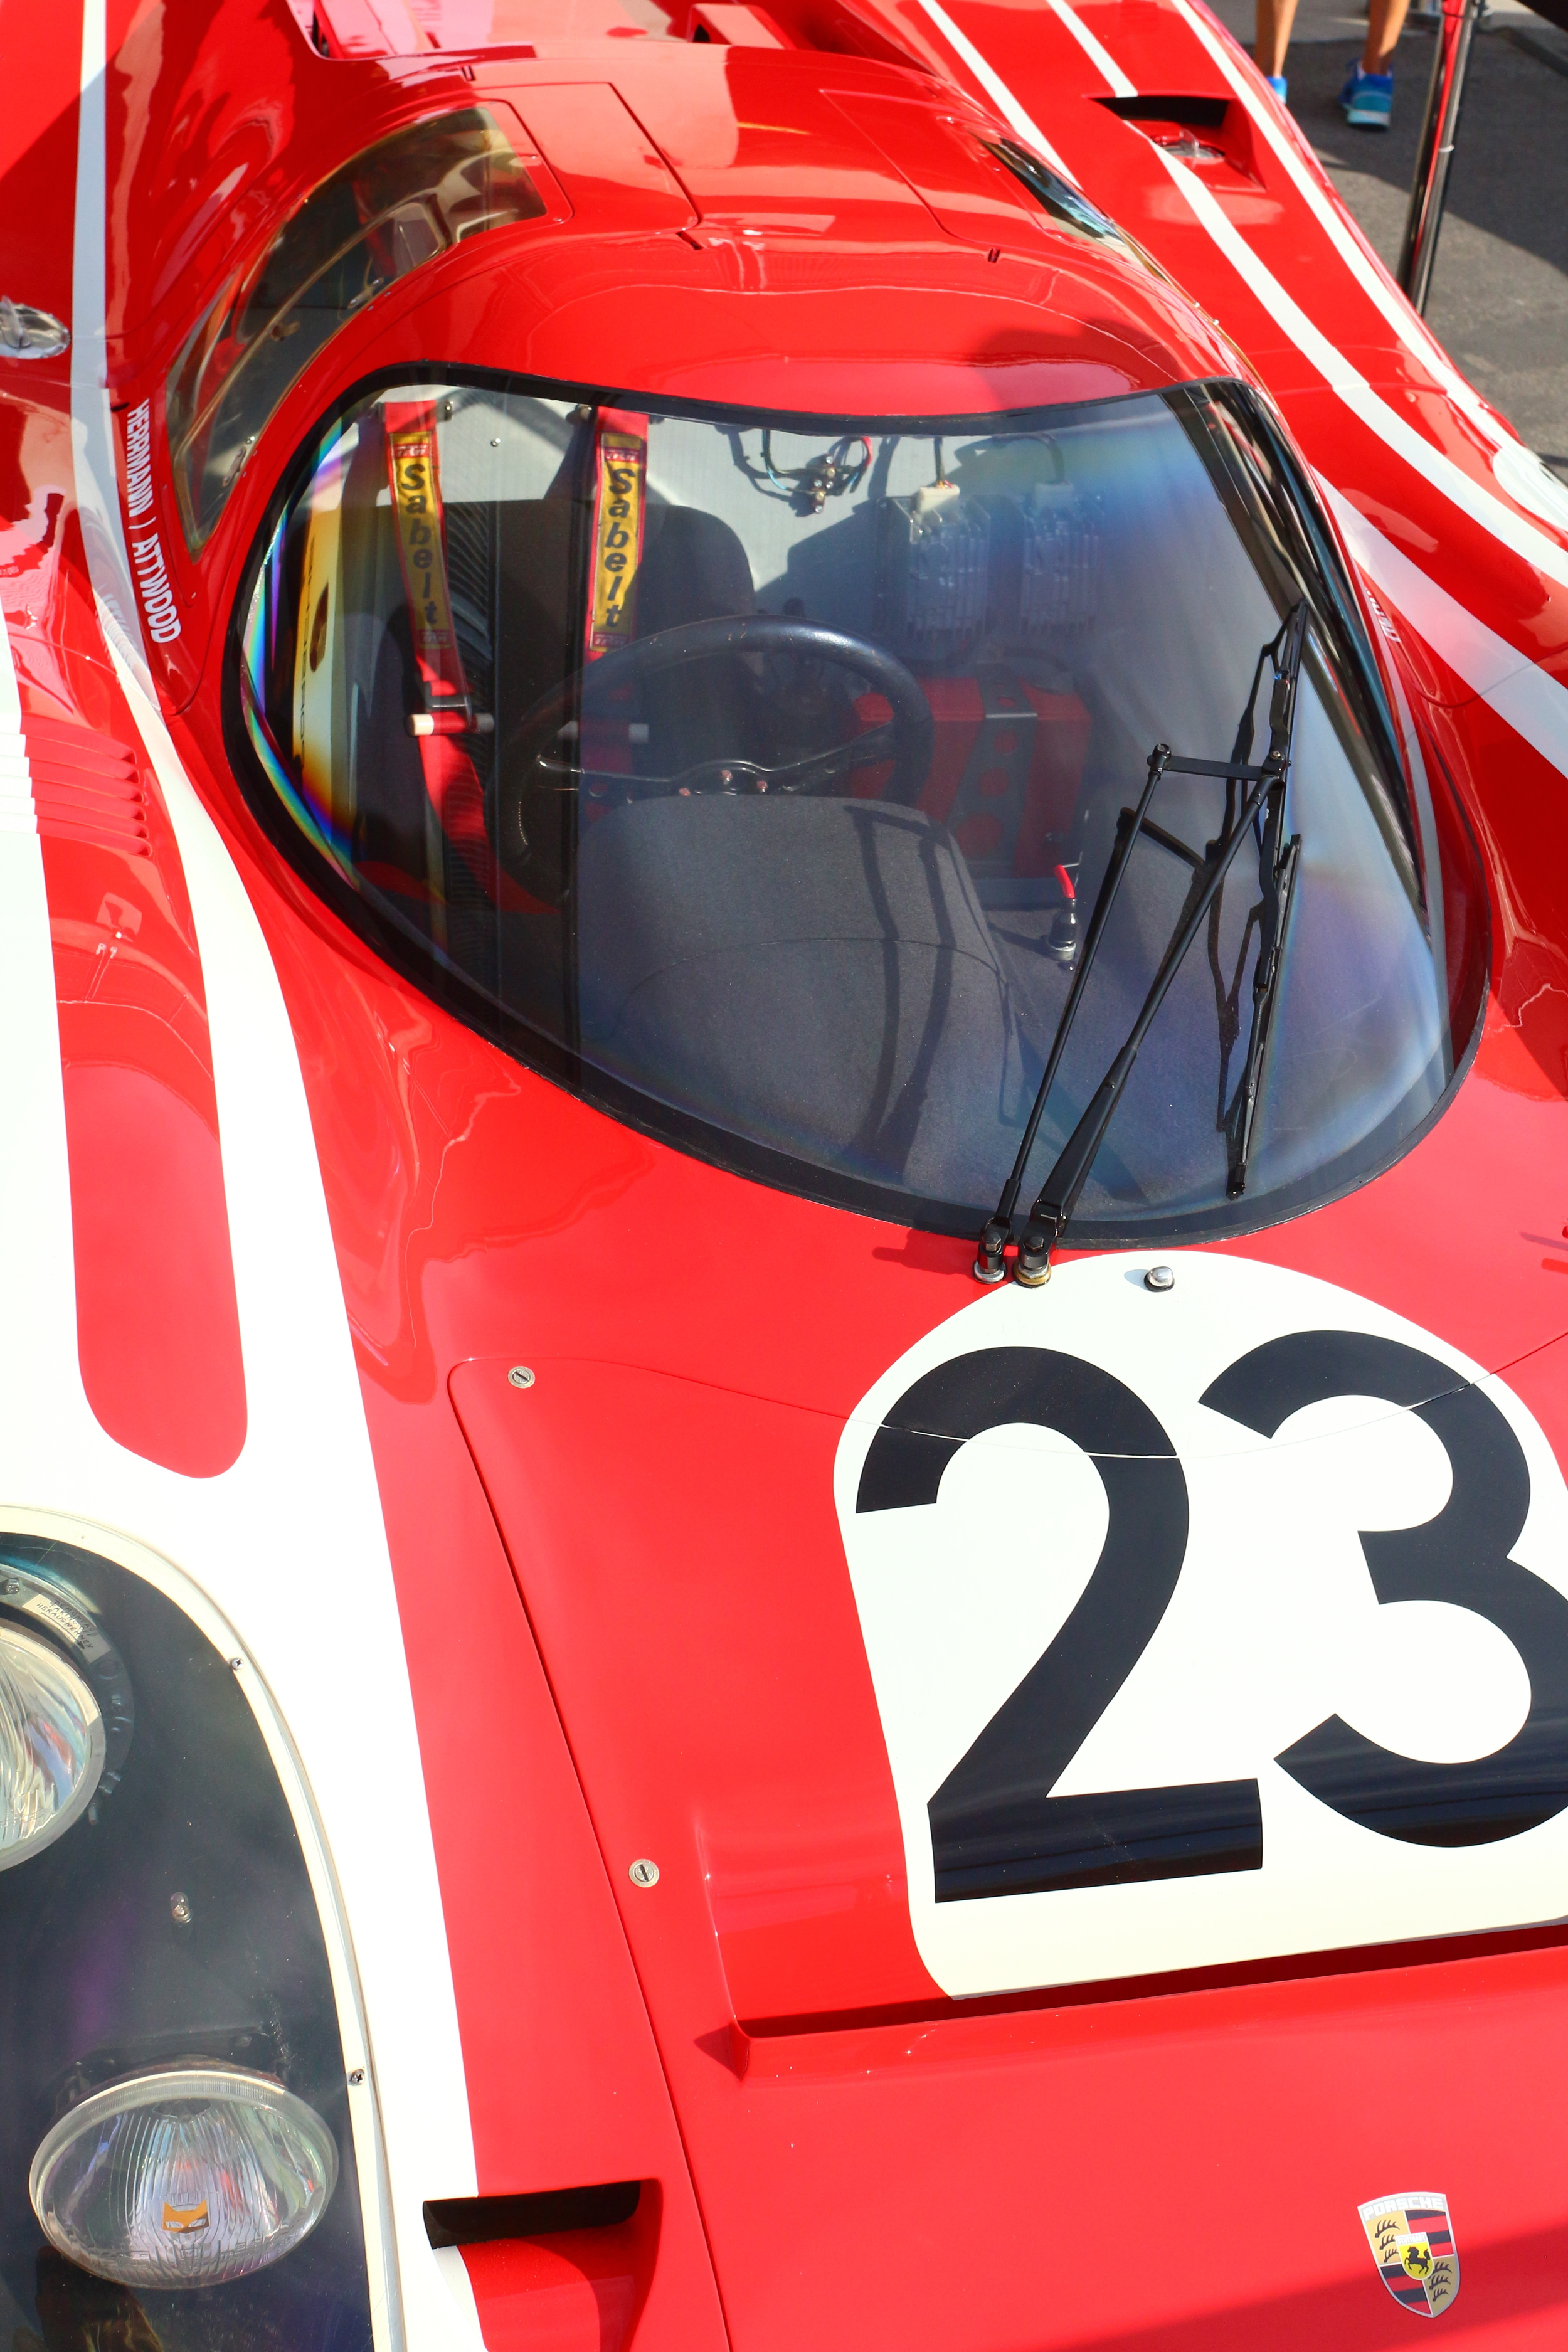 The Atwood Herrmann Porsche 917.